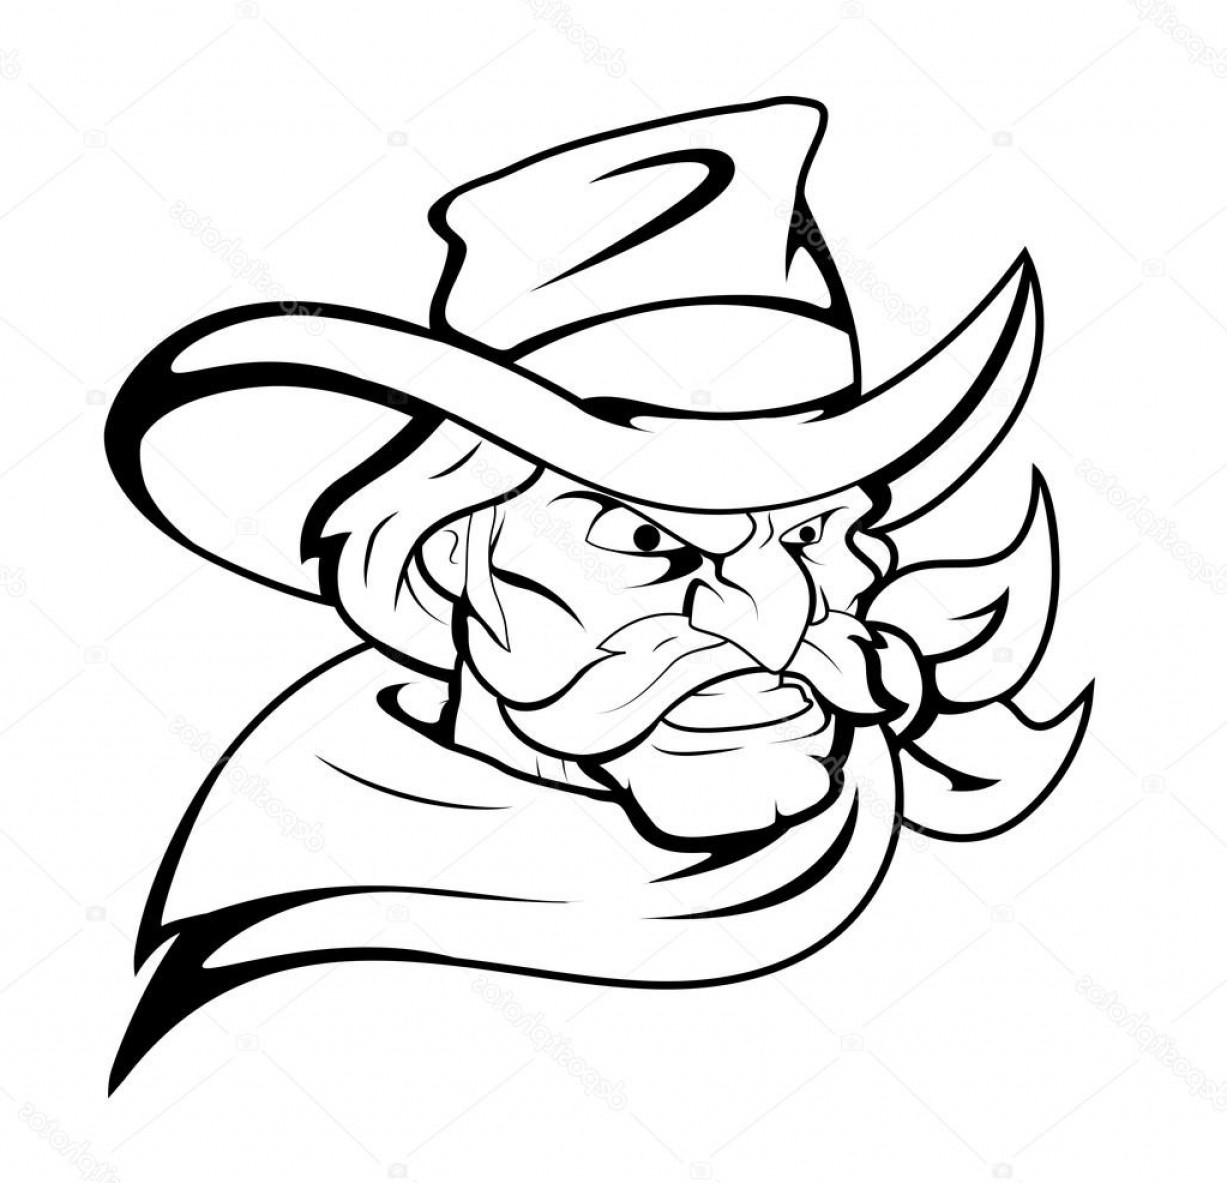 cowboy line drawing now or never sketches cowboy praying continuous line drawing cowboy line